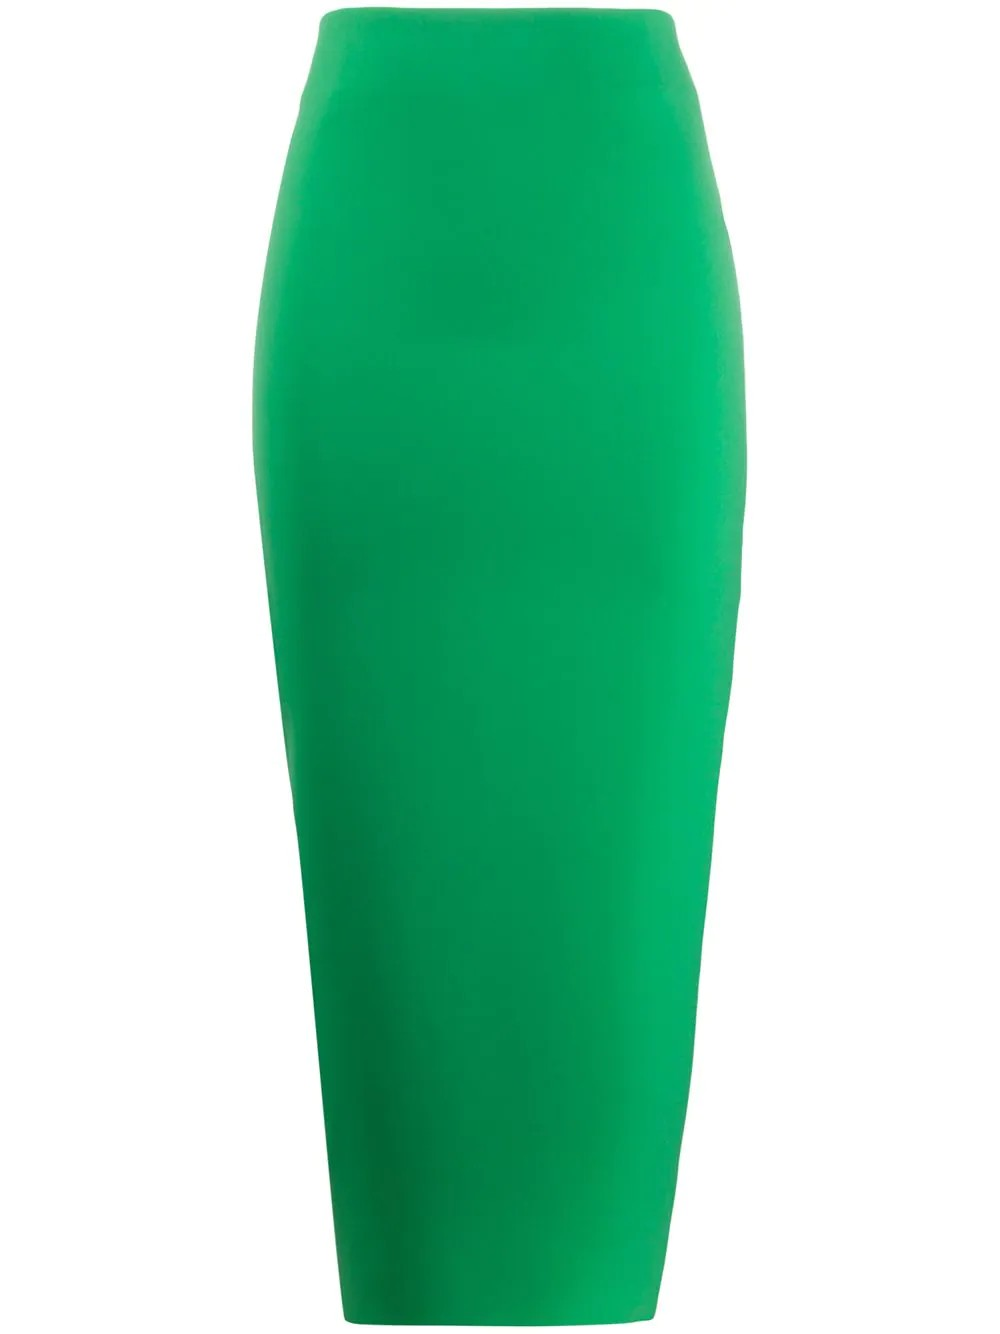 SS20 S14 PL10 700 GREEN